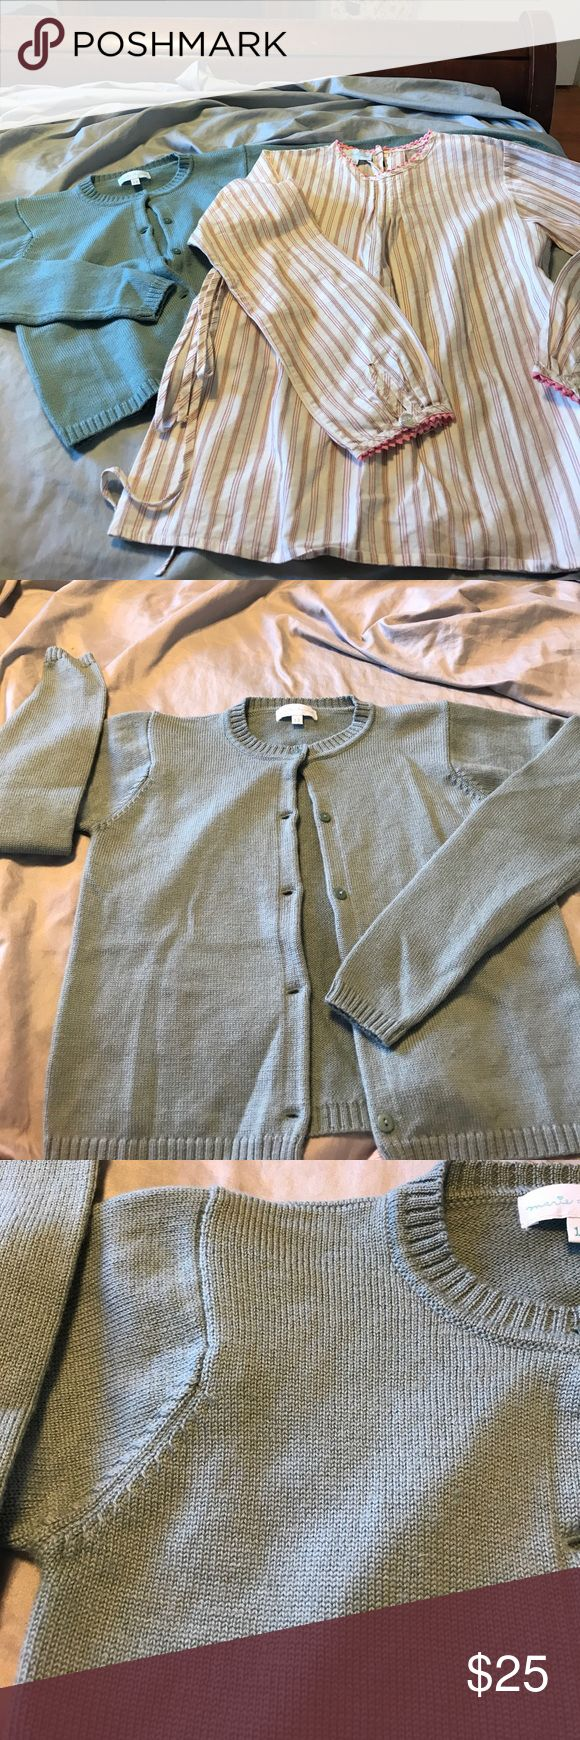 Marie Chantal bundle. Size 12 sweater and top Loose fit stripe cotton top. Ric rac wrist and collar. Back button closure. Side tie. Green cardigan sweater. 100% extra fine merino wool. Marie Chantal Shirts & Tops